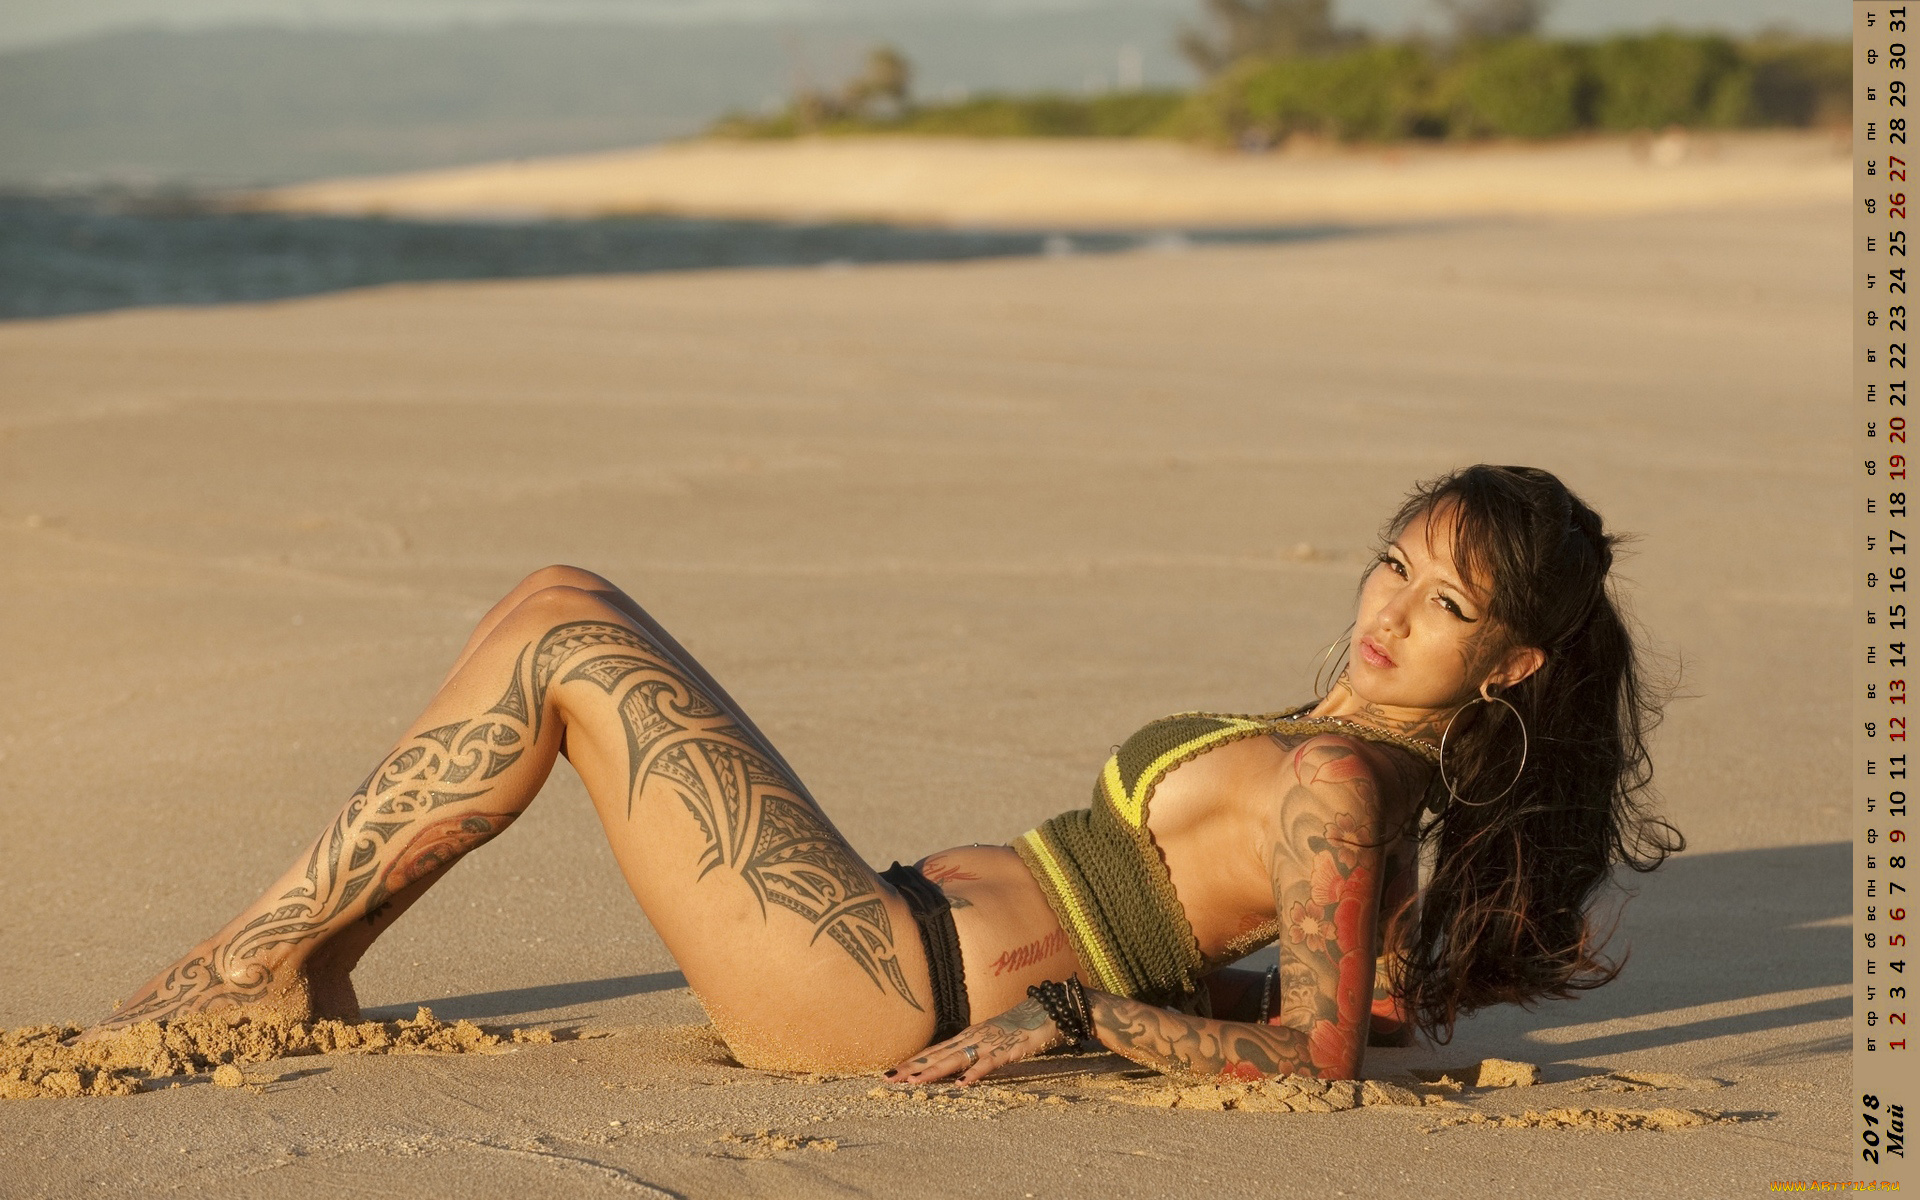 extremely-hot-girls-with-tattoos-on-beach-nude-hoodrat-sex